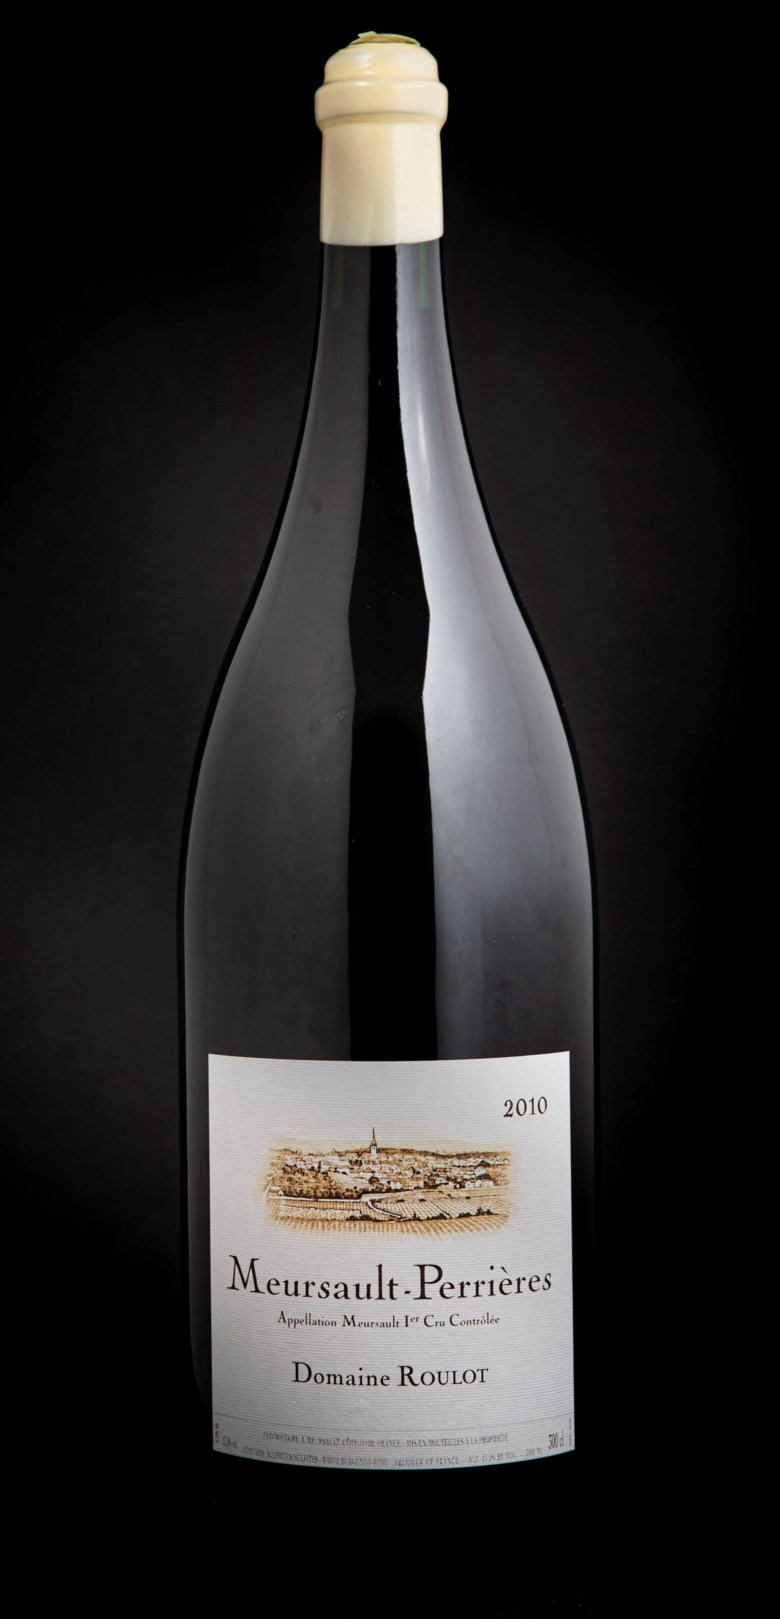 Domaine Roulot, Meursault Les Perrières 2010, 1 jeroboam per lot. Estimate £3,000-4,000. Offered in Fine and Rare Wines Including Rare Burgundy to Benefit Maison Jacques Copeau on 20 March 2019 at Christie's in London